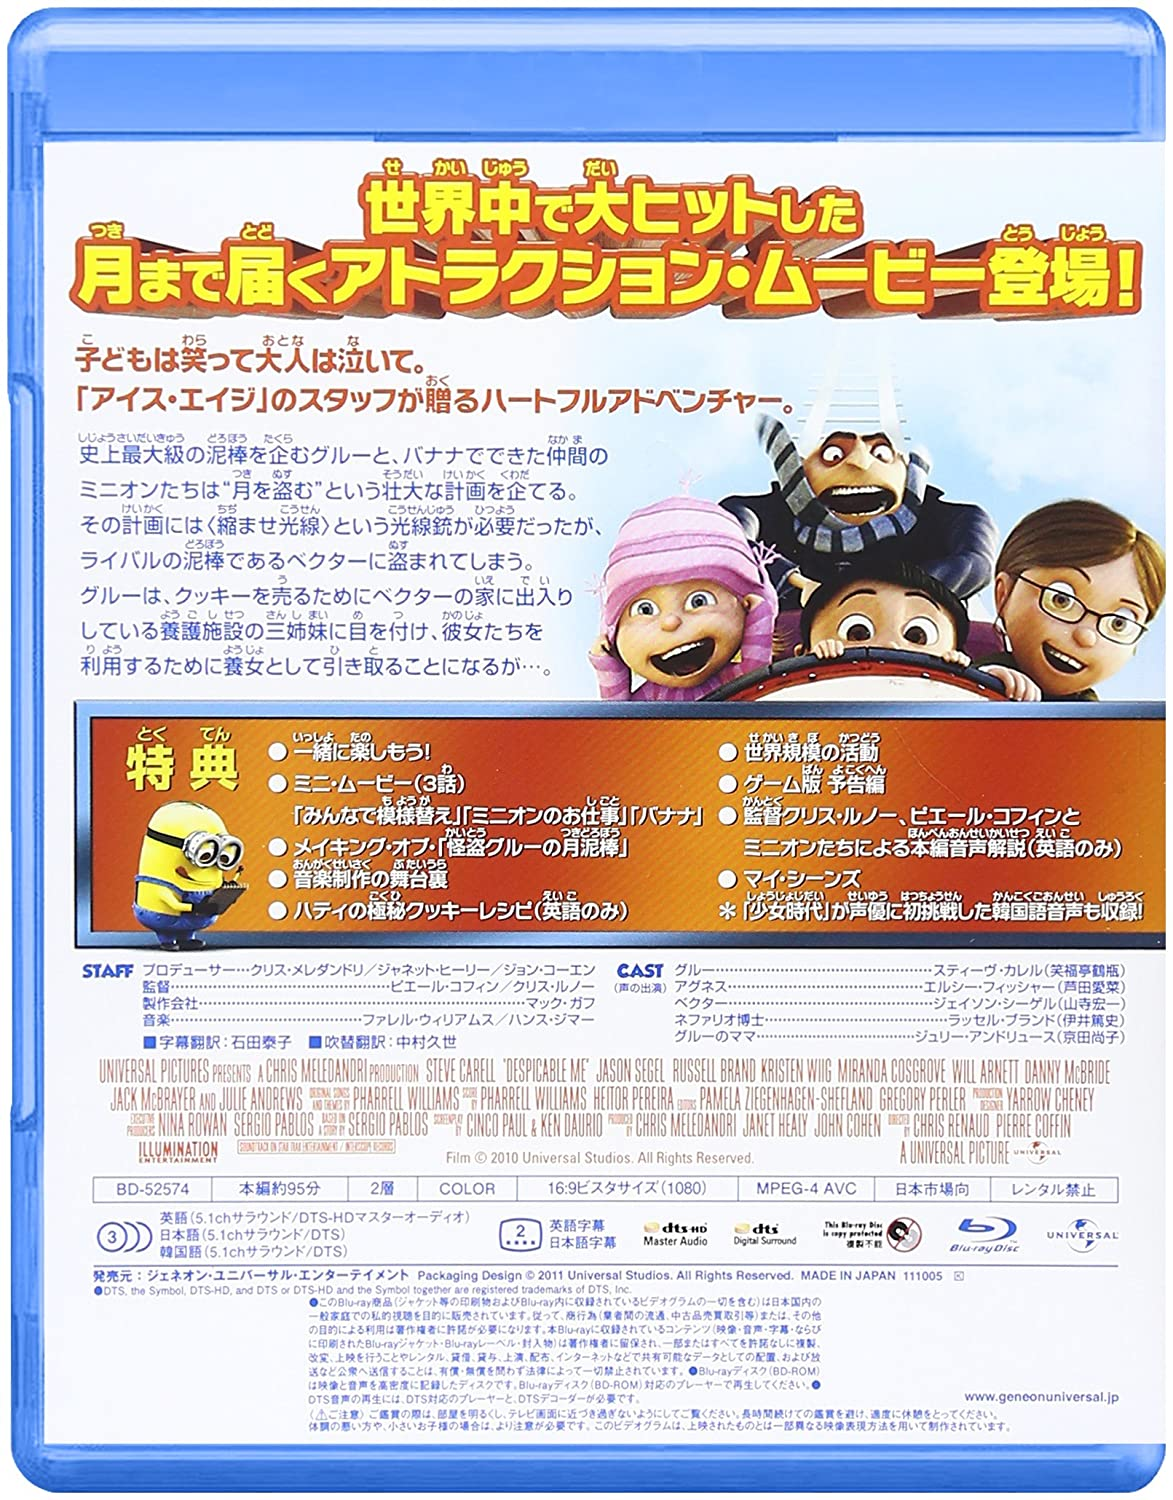 Amazon animation despicable me japan bd gnxa 1440 movies amazon animation despicable me japan bd gnxa 1440 movies tv biocorpaavc Image collections